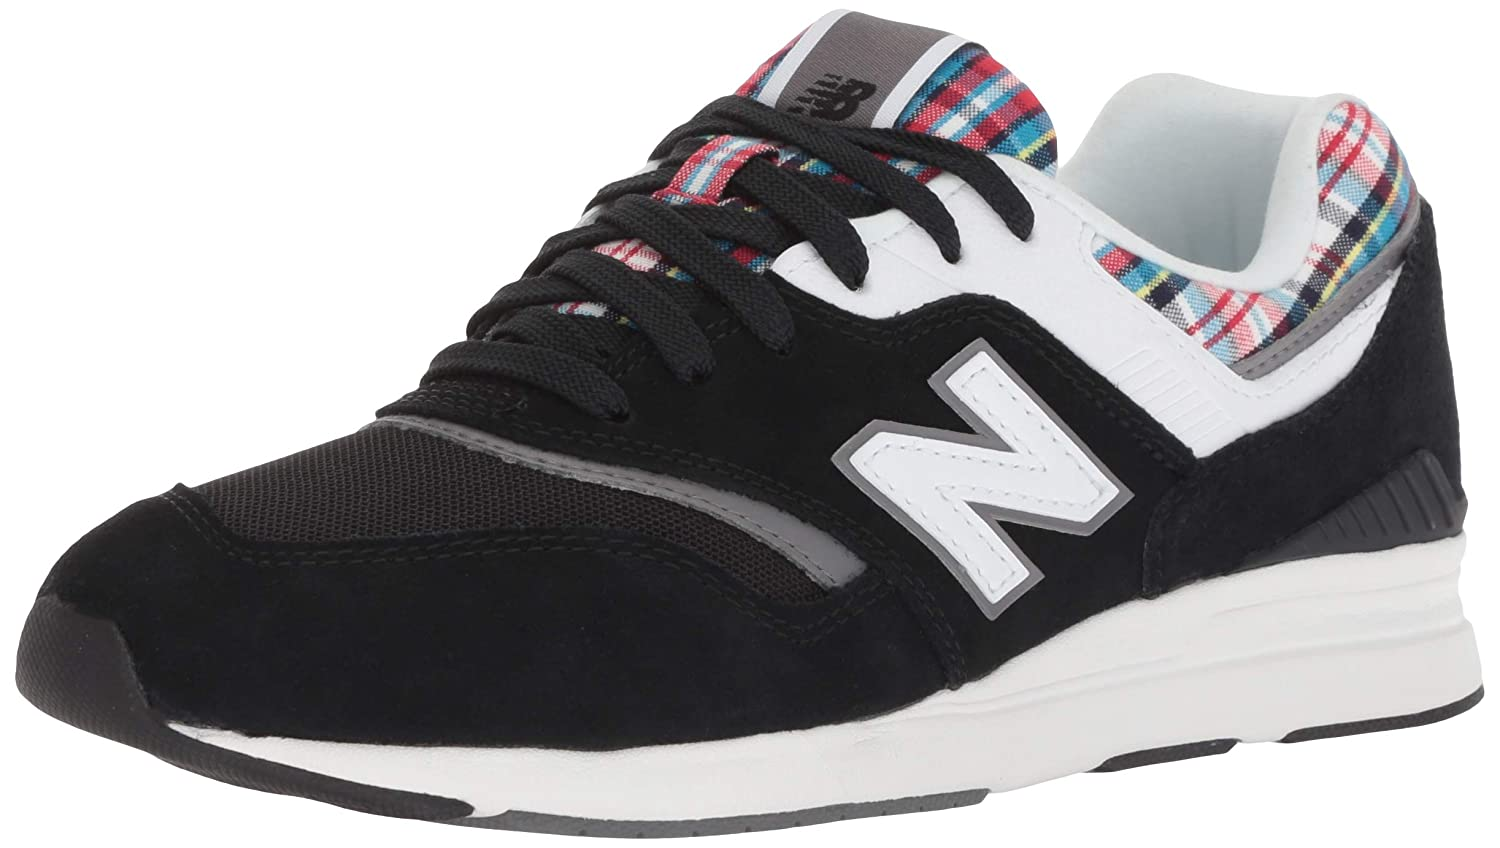 New Balance Wl697 B Leather Leather Leather Mesh Synthetic - tra schwarz, Größe 5 f0c21f